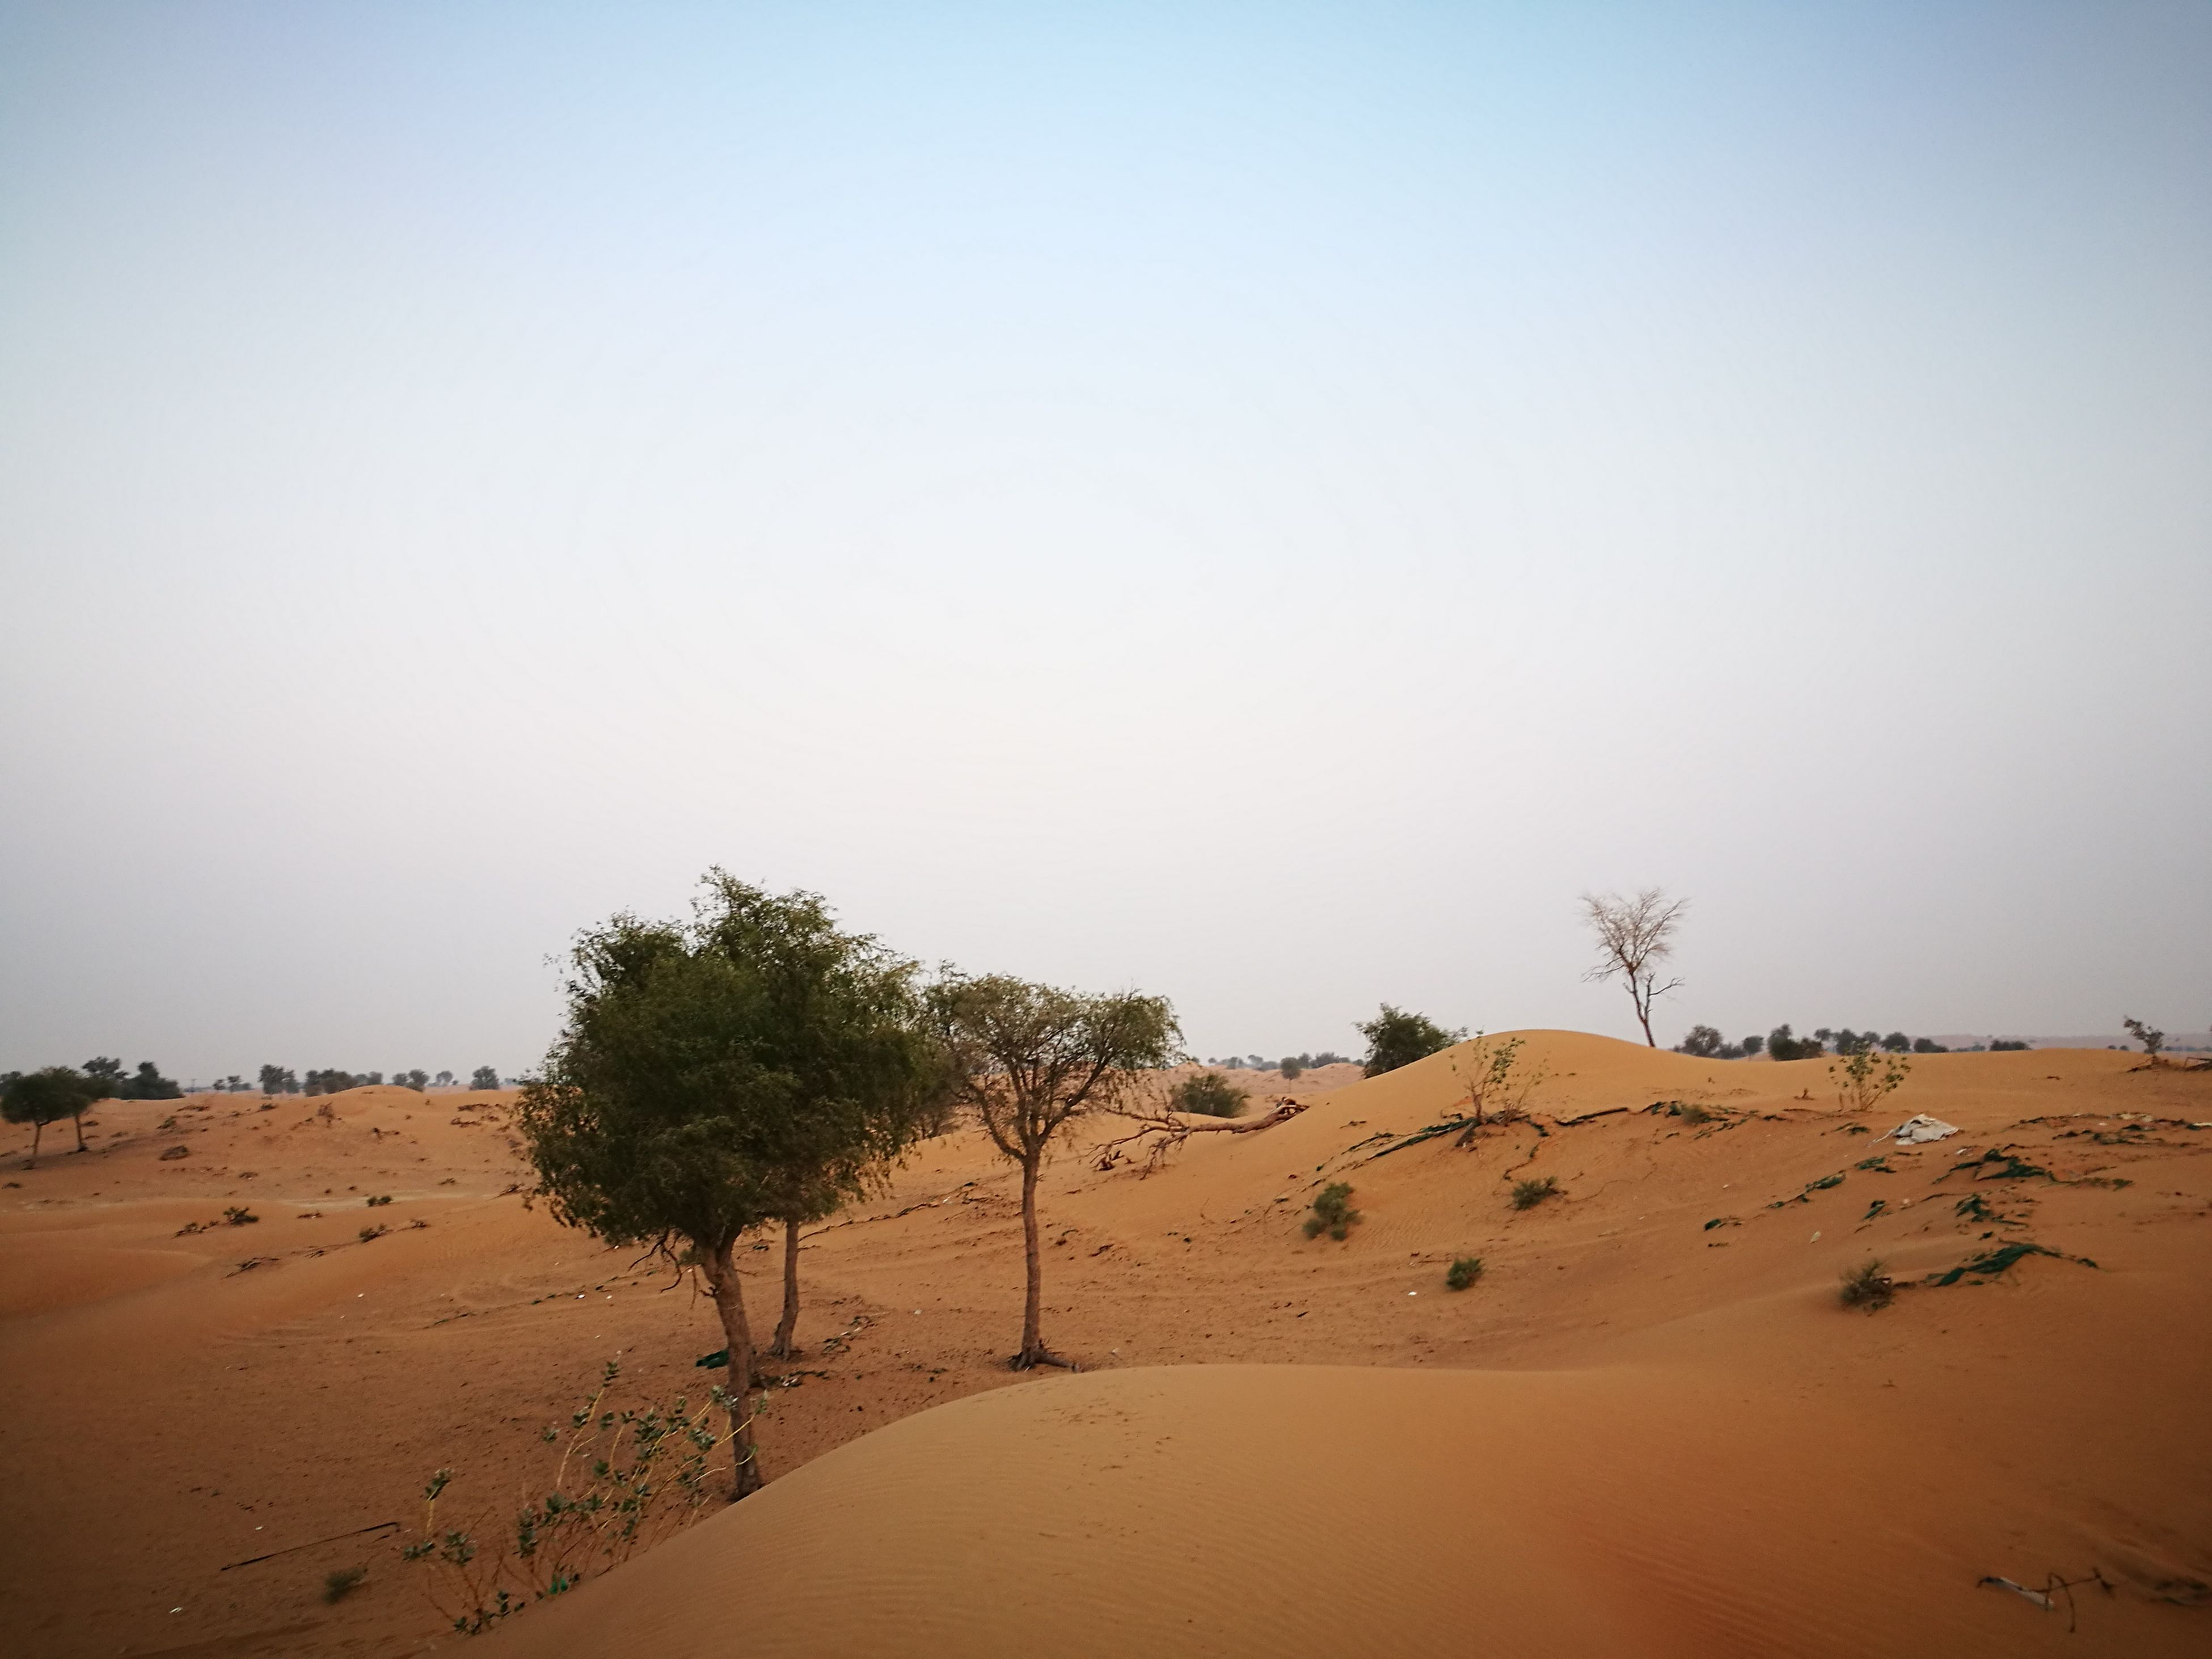 sand, nature, clear sky, beach, desert, tree, tranquil scene, beauty in nature, no people, tranquility, outdoors, sand dune, arid climate, day, sky